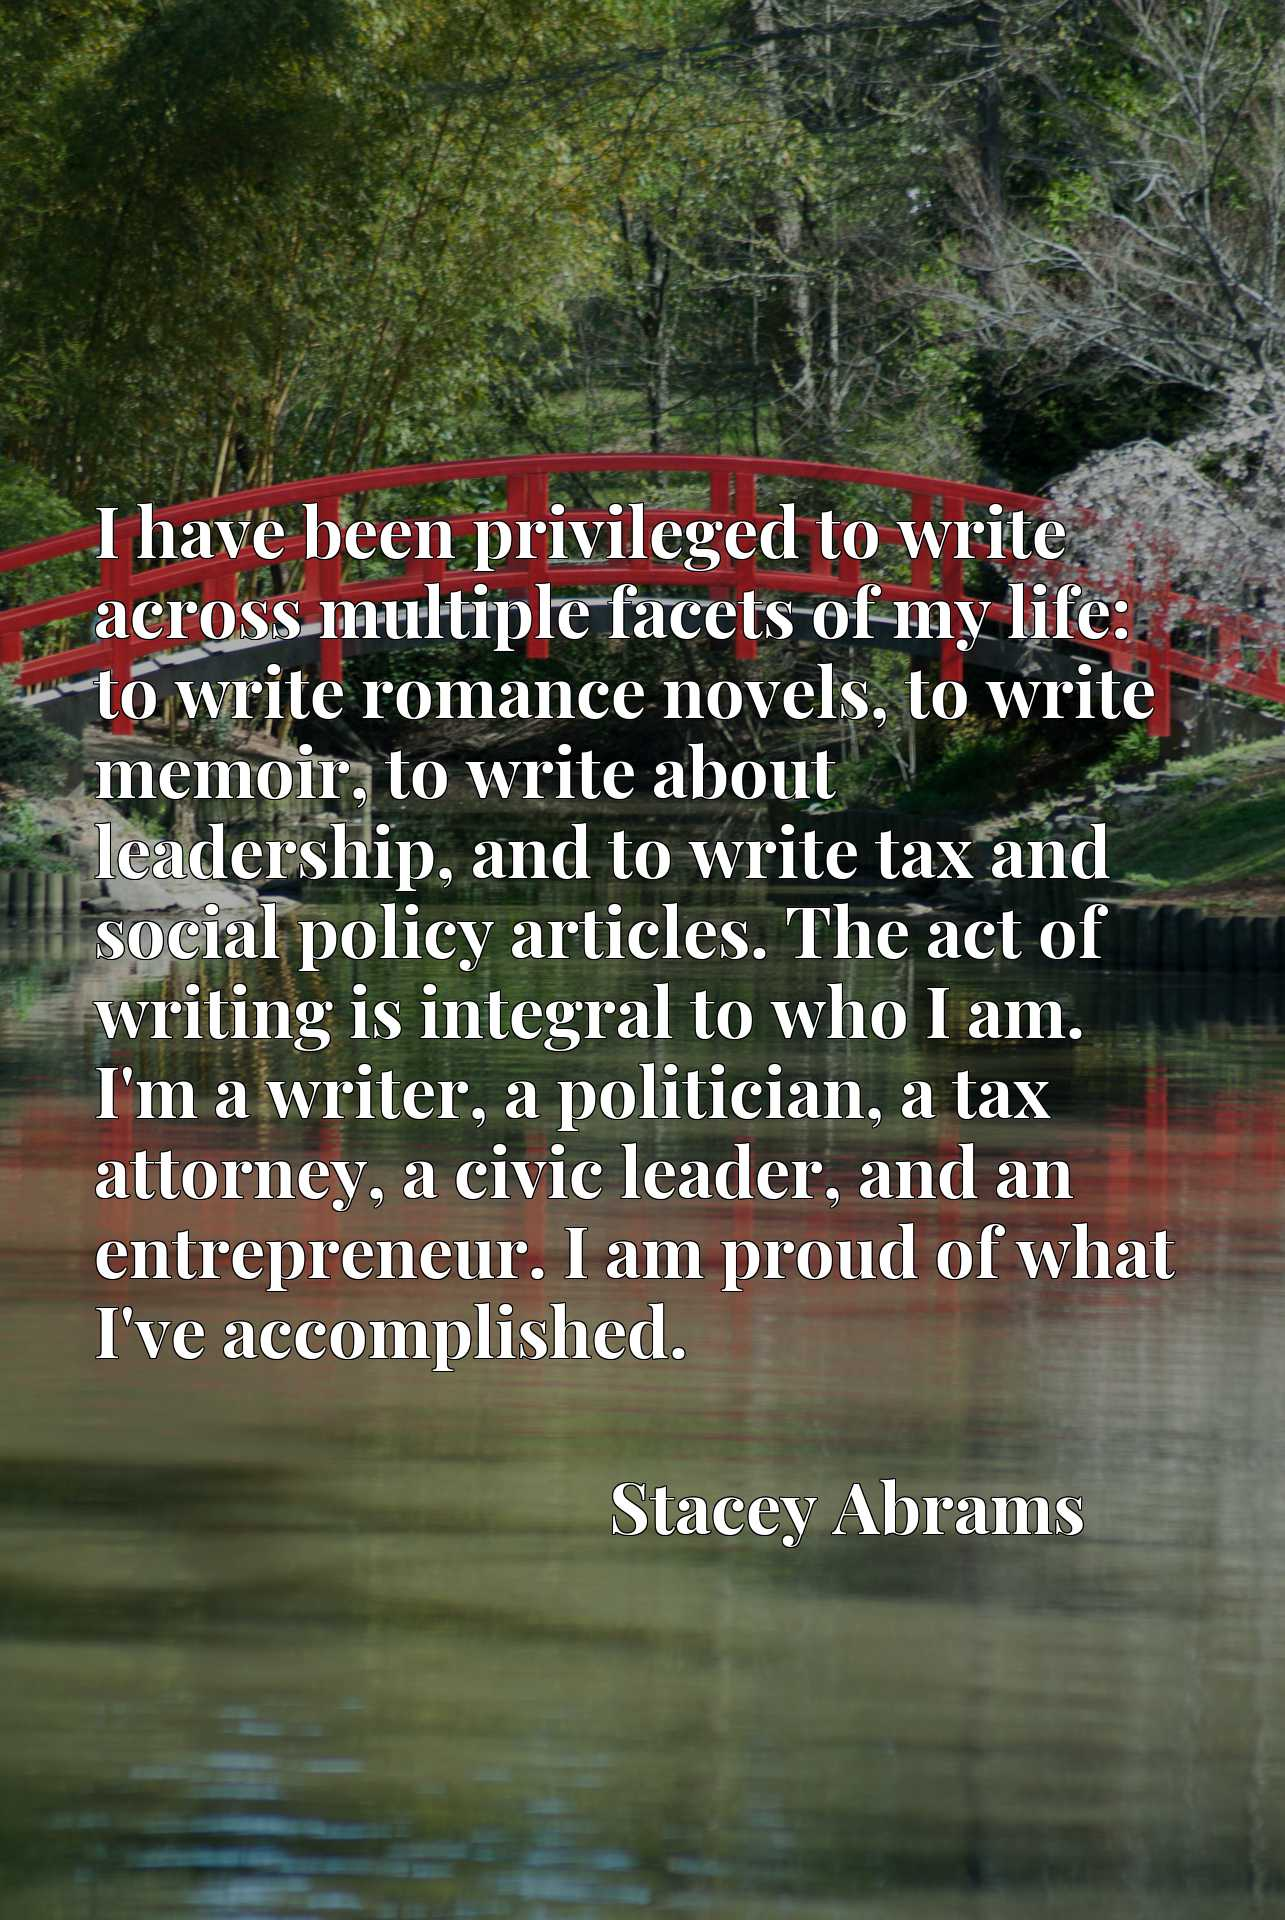 I have been privileged to write across multiple facets of my life: to write romance novels, to write memoir, to write about leadership, and to write tax and social policy articles. The act of writing is integral to who I am. I'm a writer, a politician, a tax attorney, a civic leader, and an entrepreneur. I am proud of what I've accomplished.